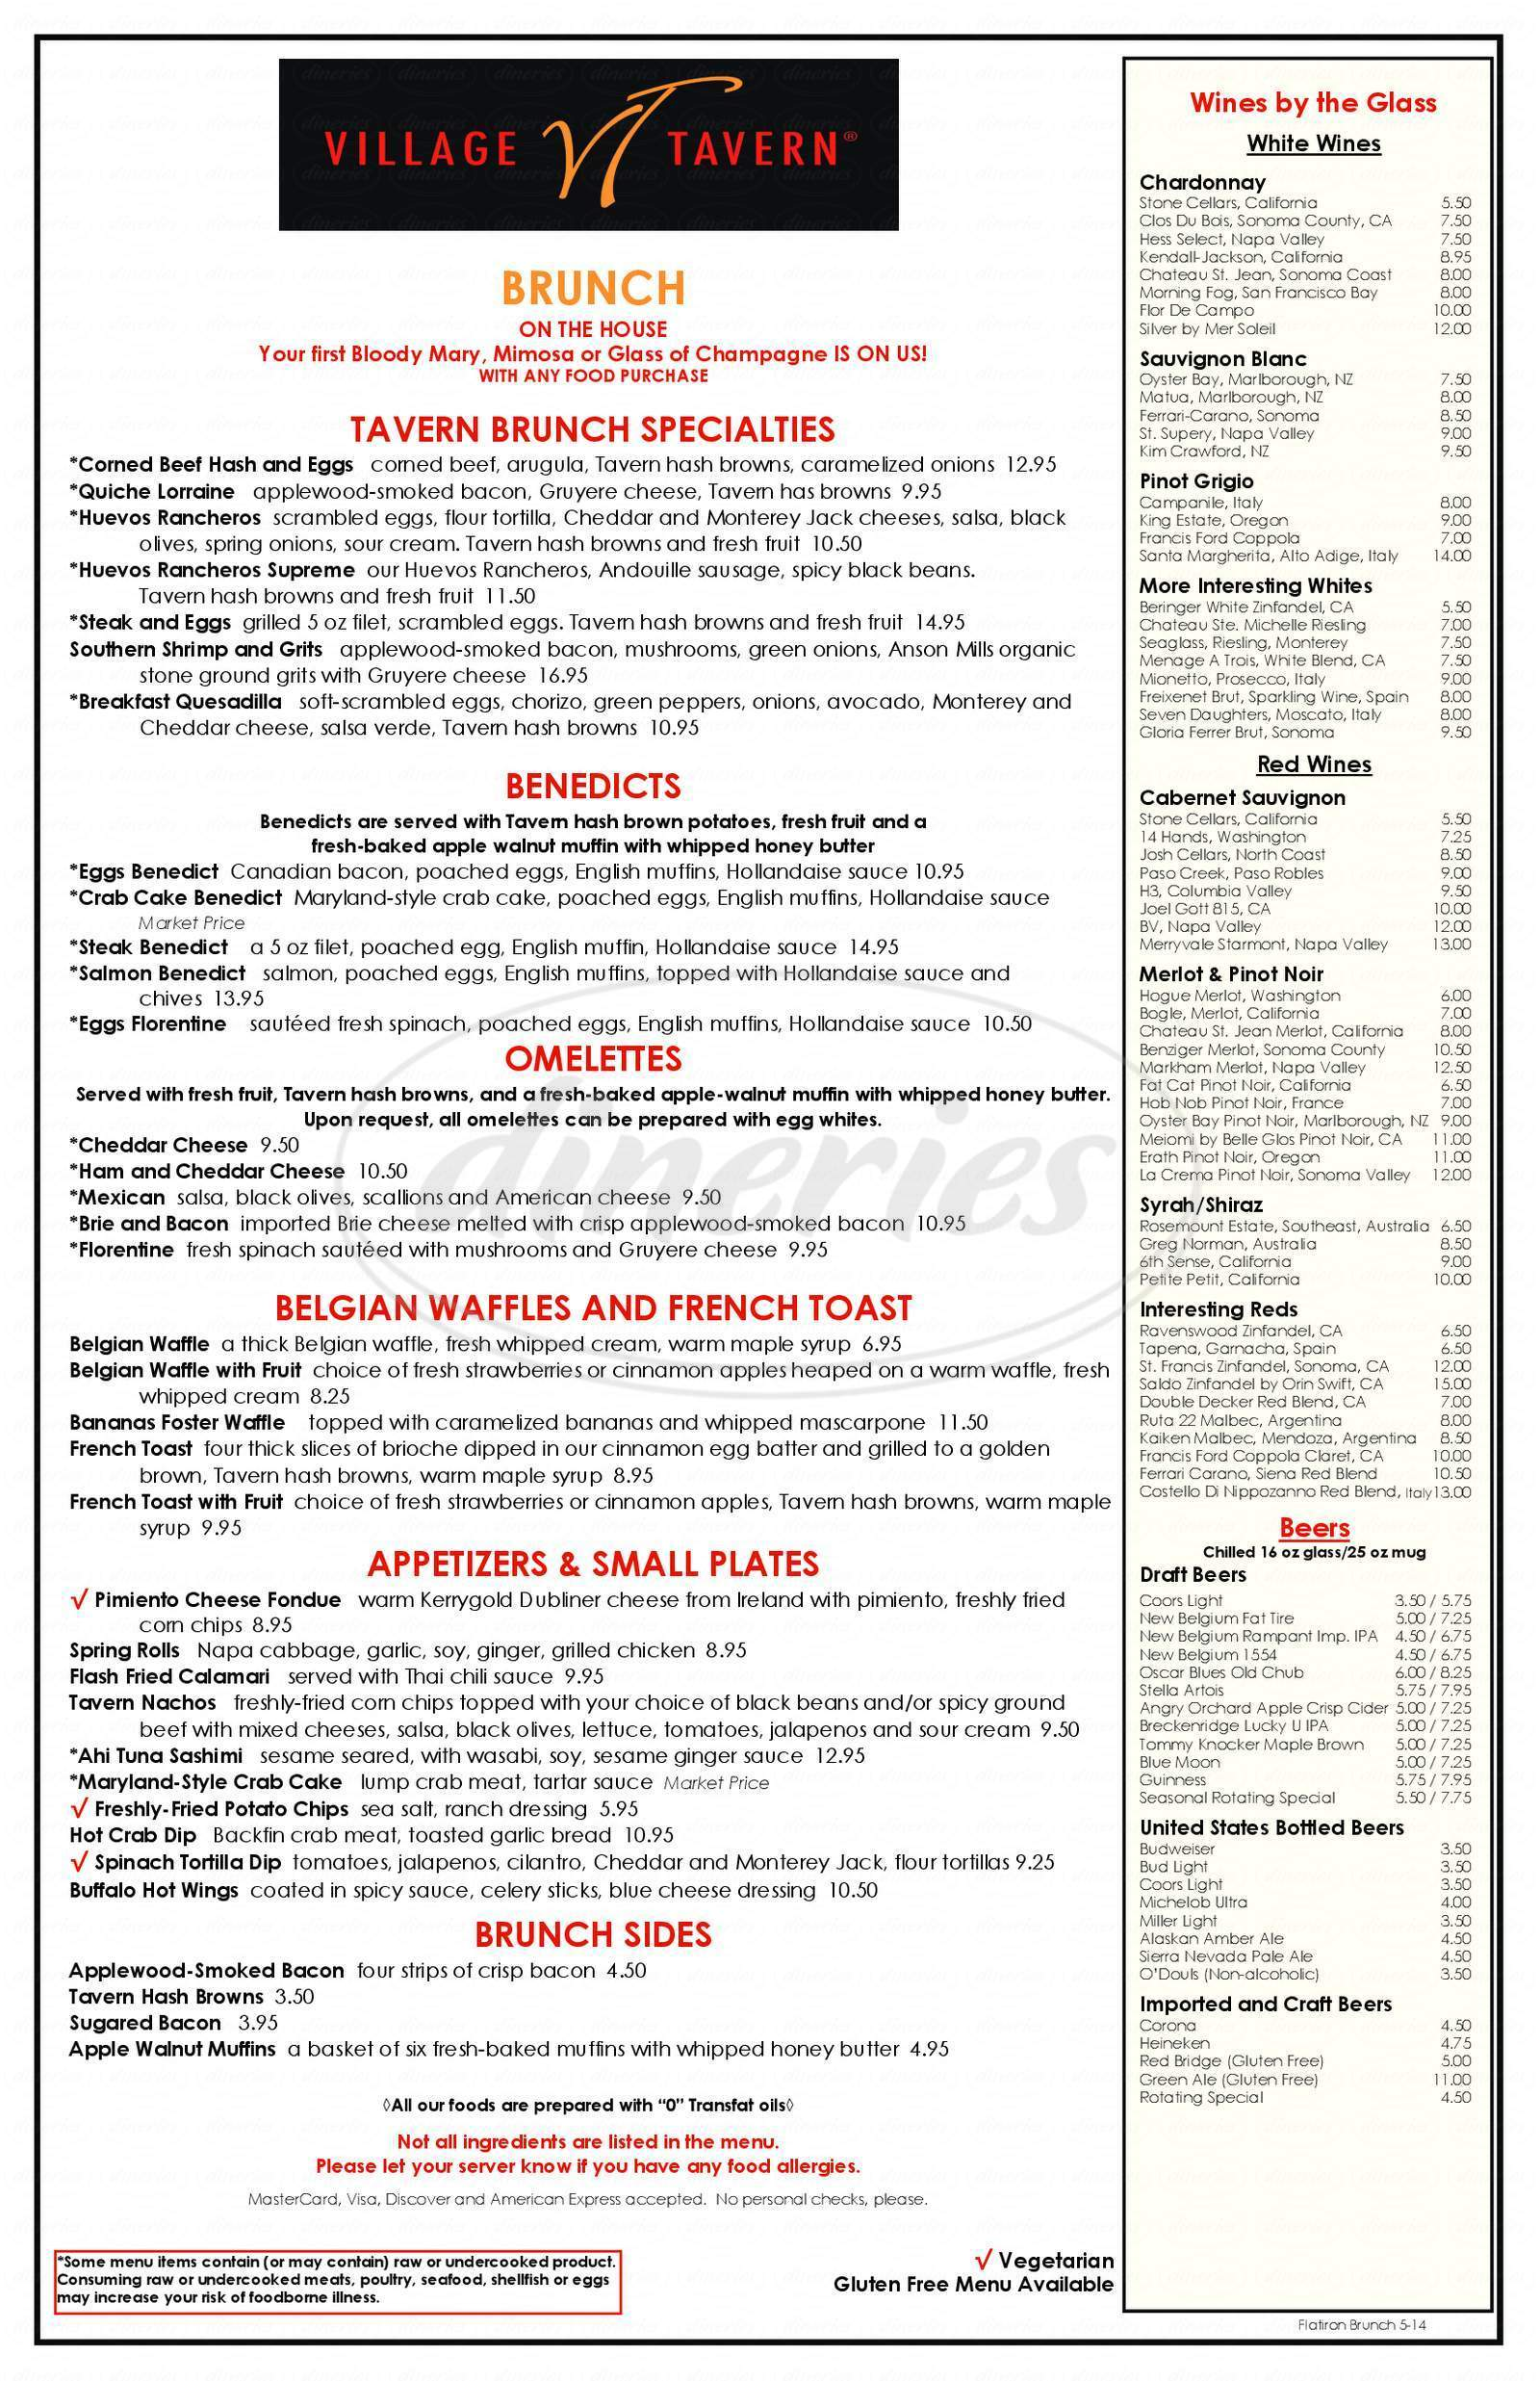 menu for Village Tavern